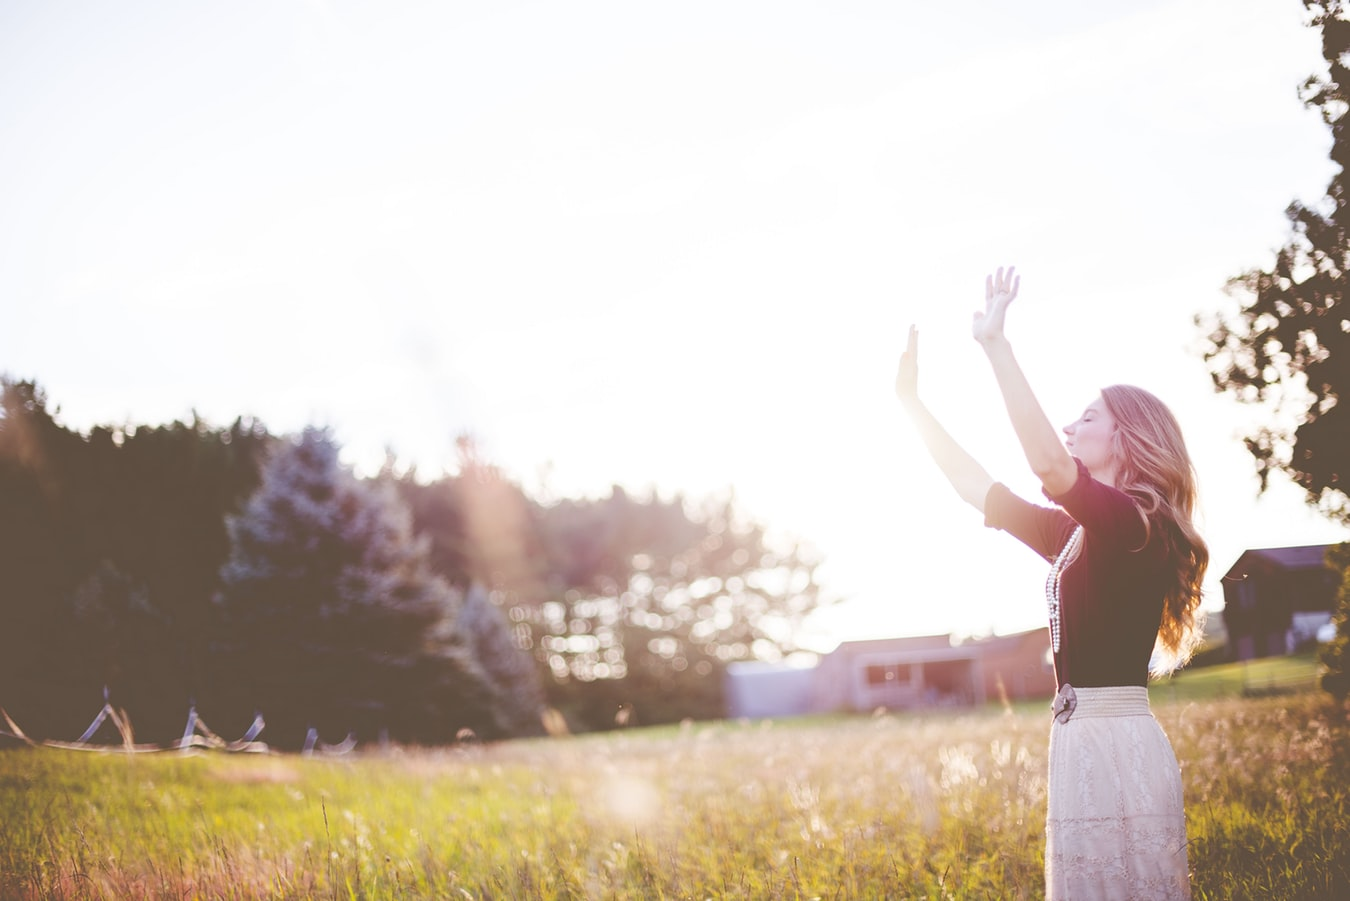 How an Optimistic Mindset Benefits Your Health